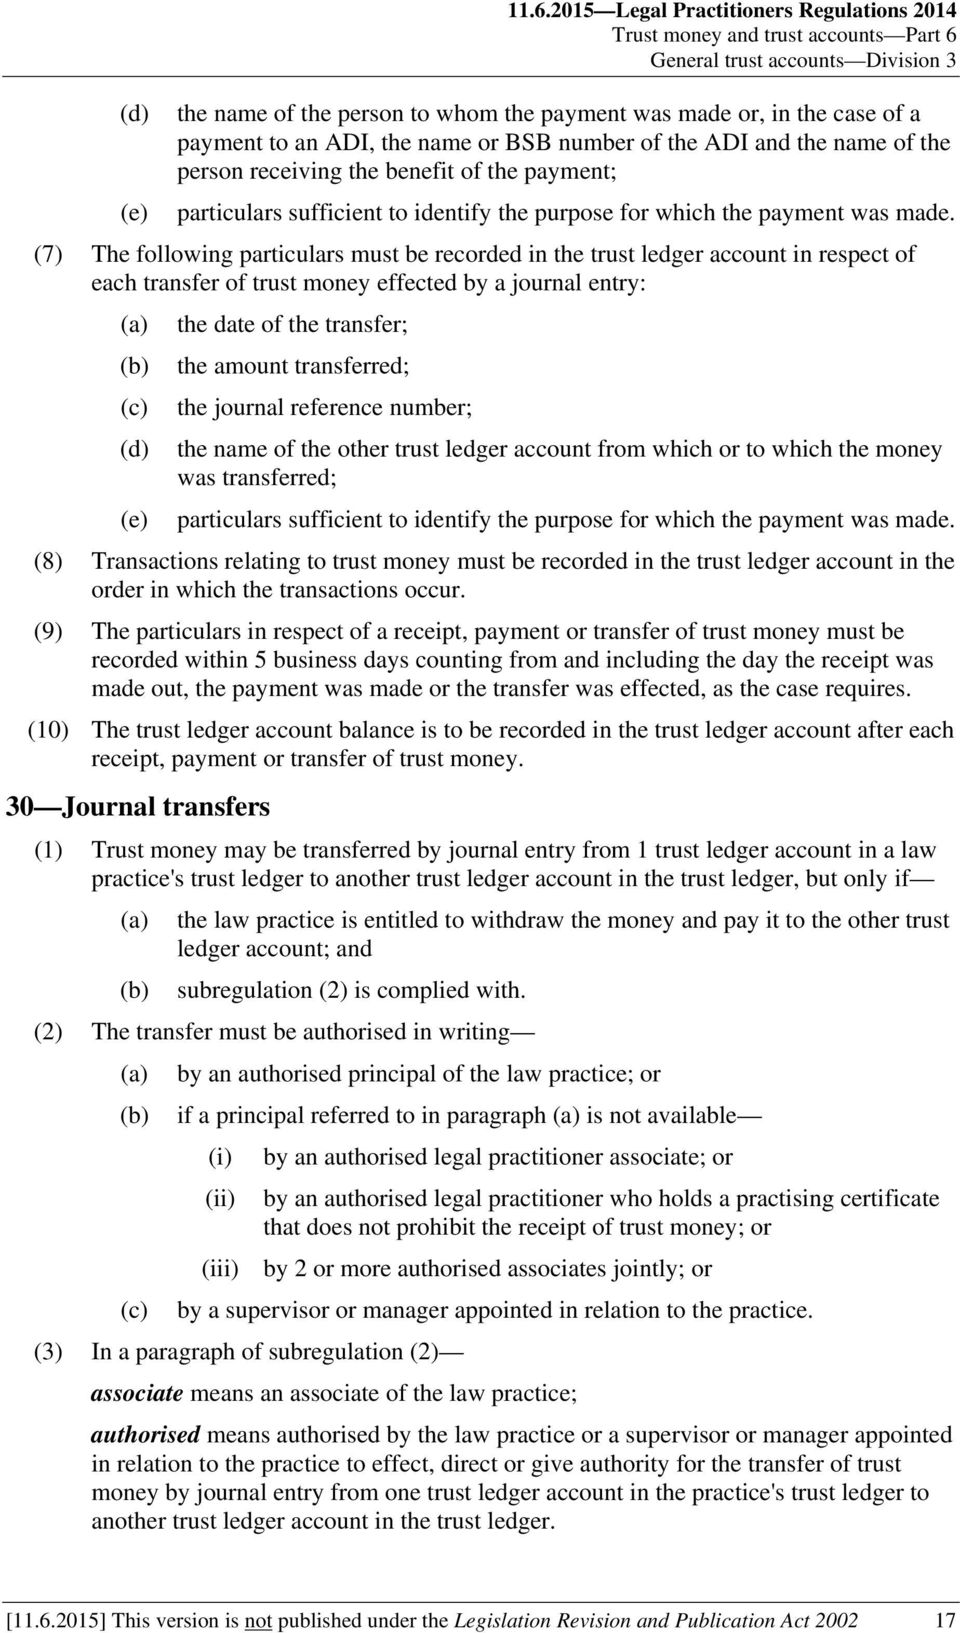 (7) The following particulars must be recorded in the trust ledger account in respect of each transfer of trust money effected by a journal entry: the date of the transfer; the amount transferred;